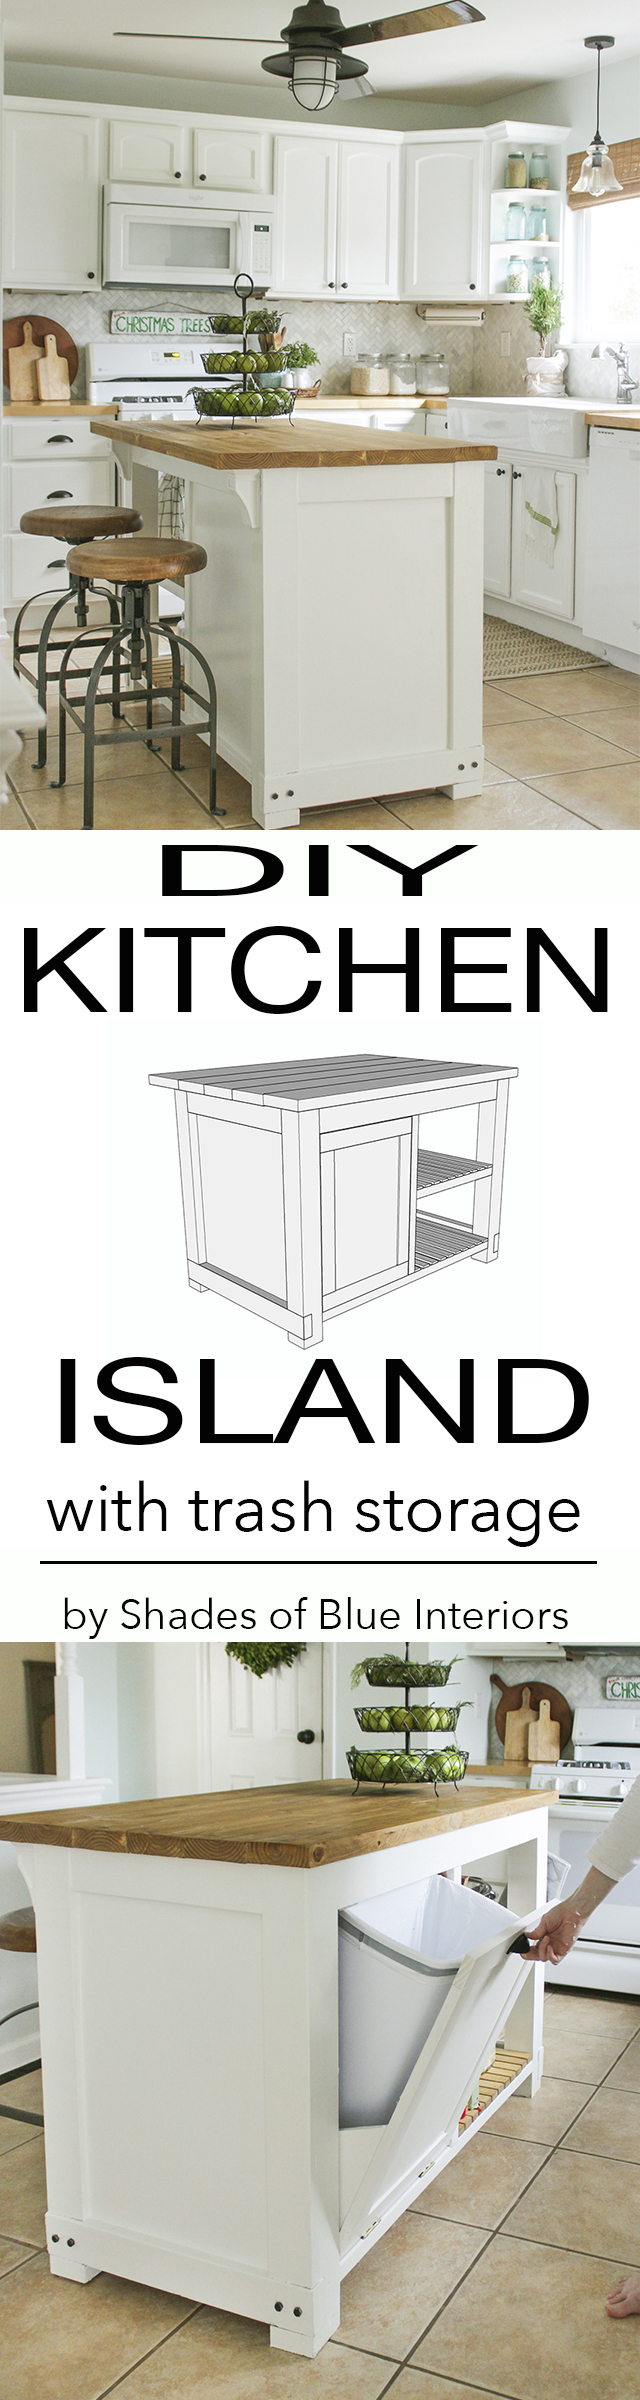 trash with hidden island also kitchen white storage plus bin can